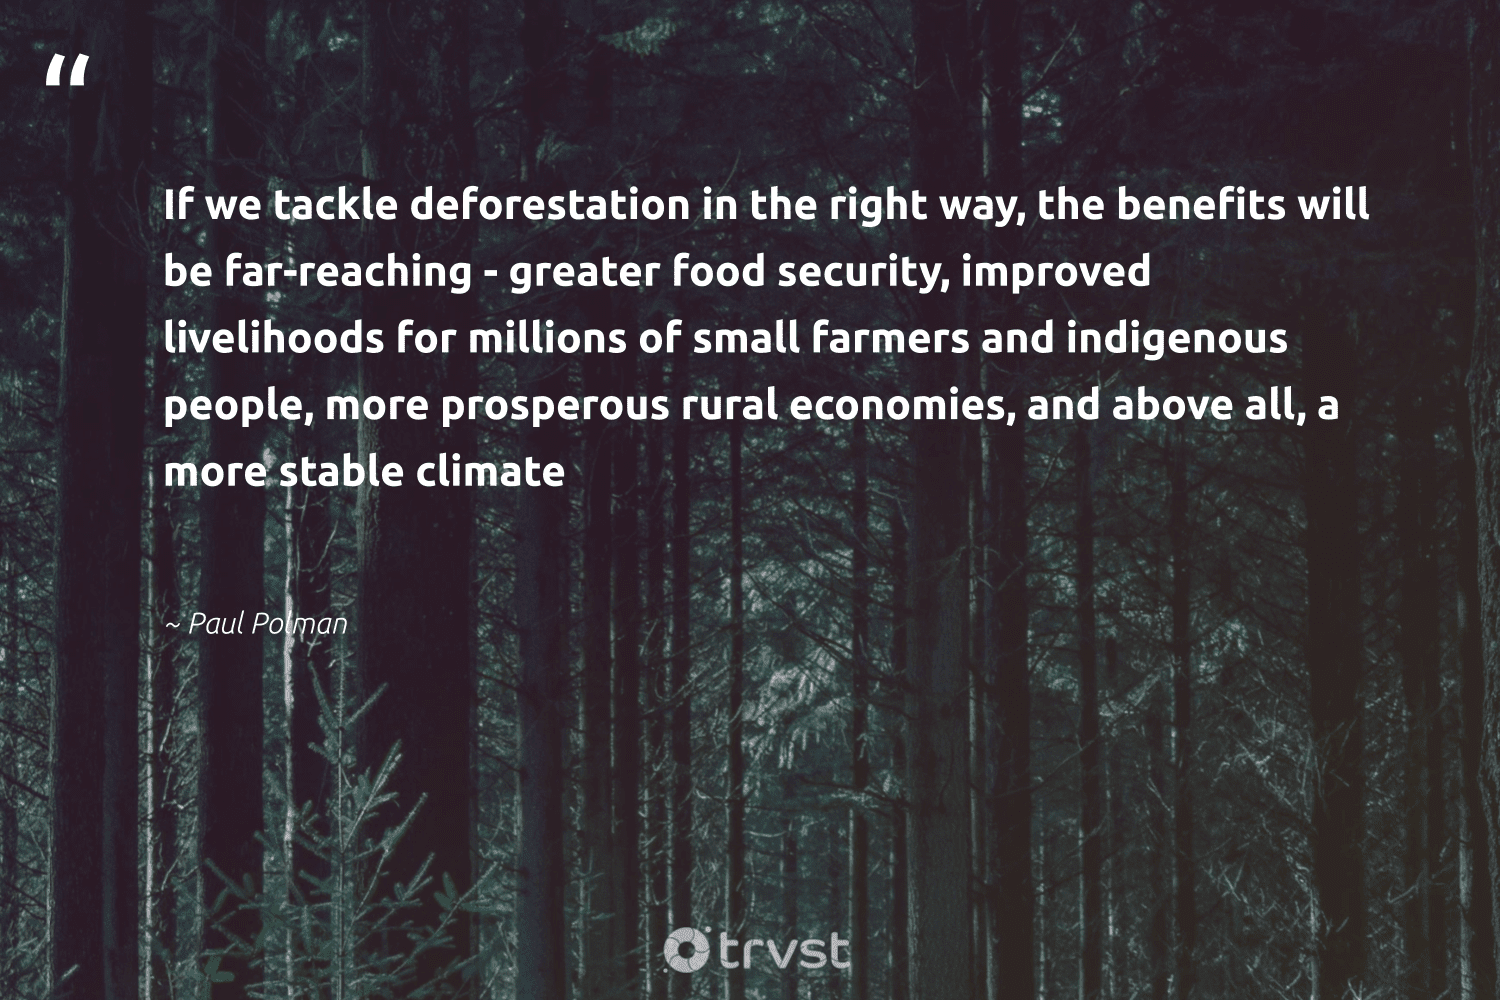 """""""If we tackle deforestation in the right way, the benefits will be far-reaching - greater food security, improved livelihoods for millions of small farmers and indigenous people, more prosperous rural economies, and above all, a more stable climate""""  - Paul Polman #trvst #quotes"""